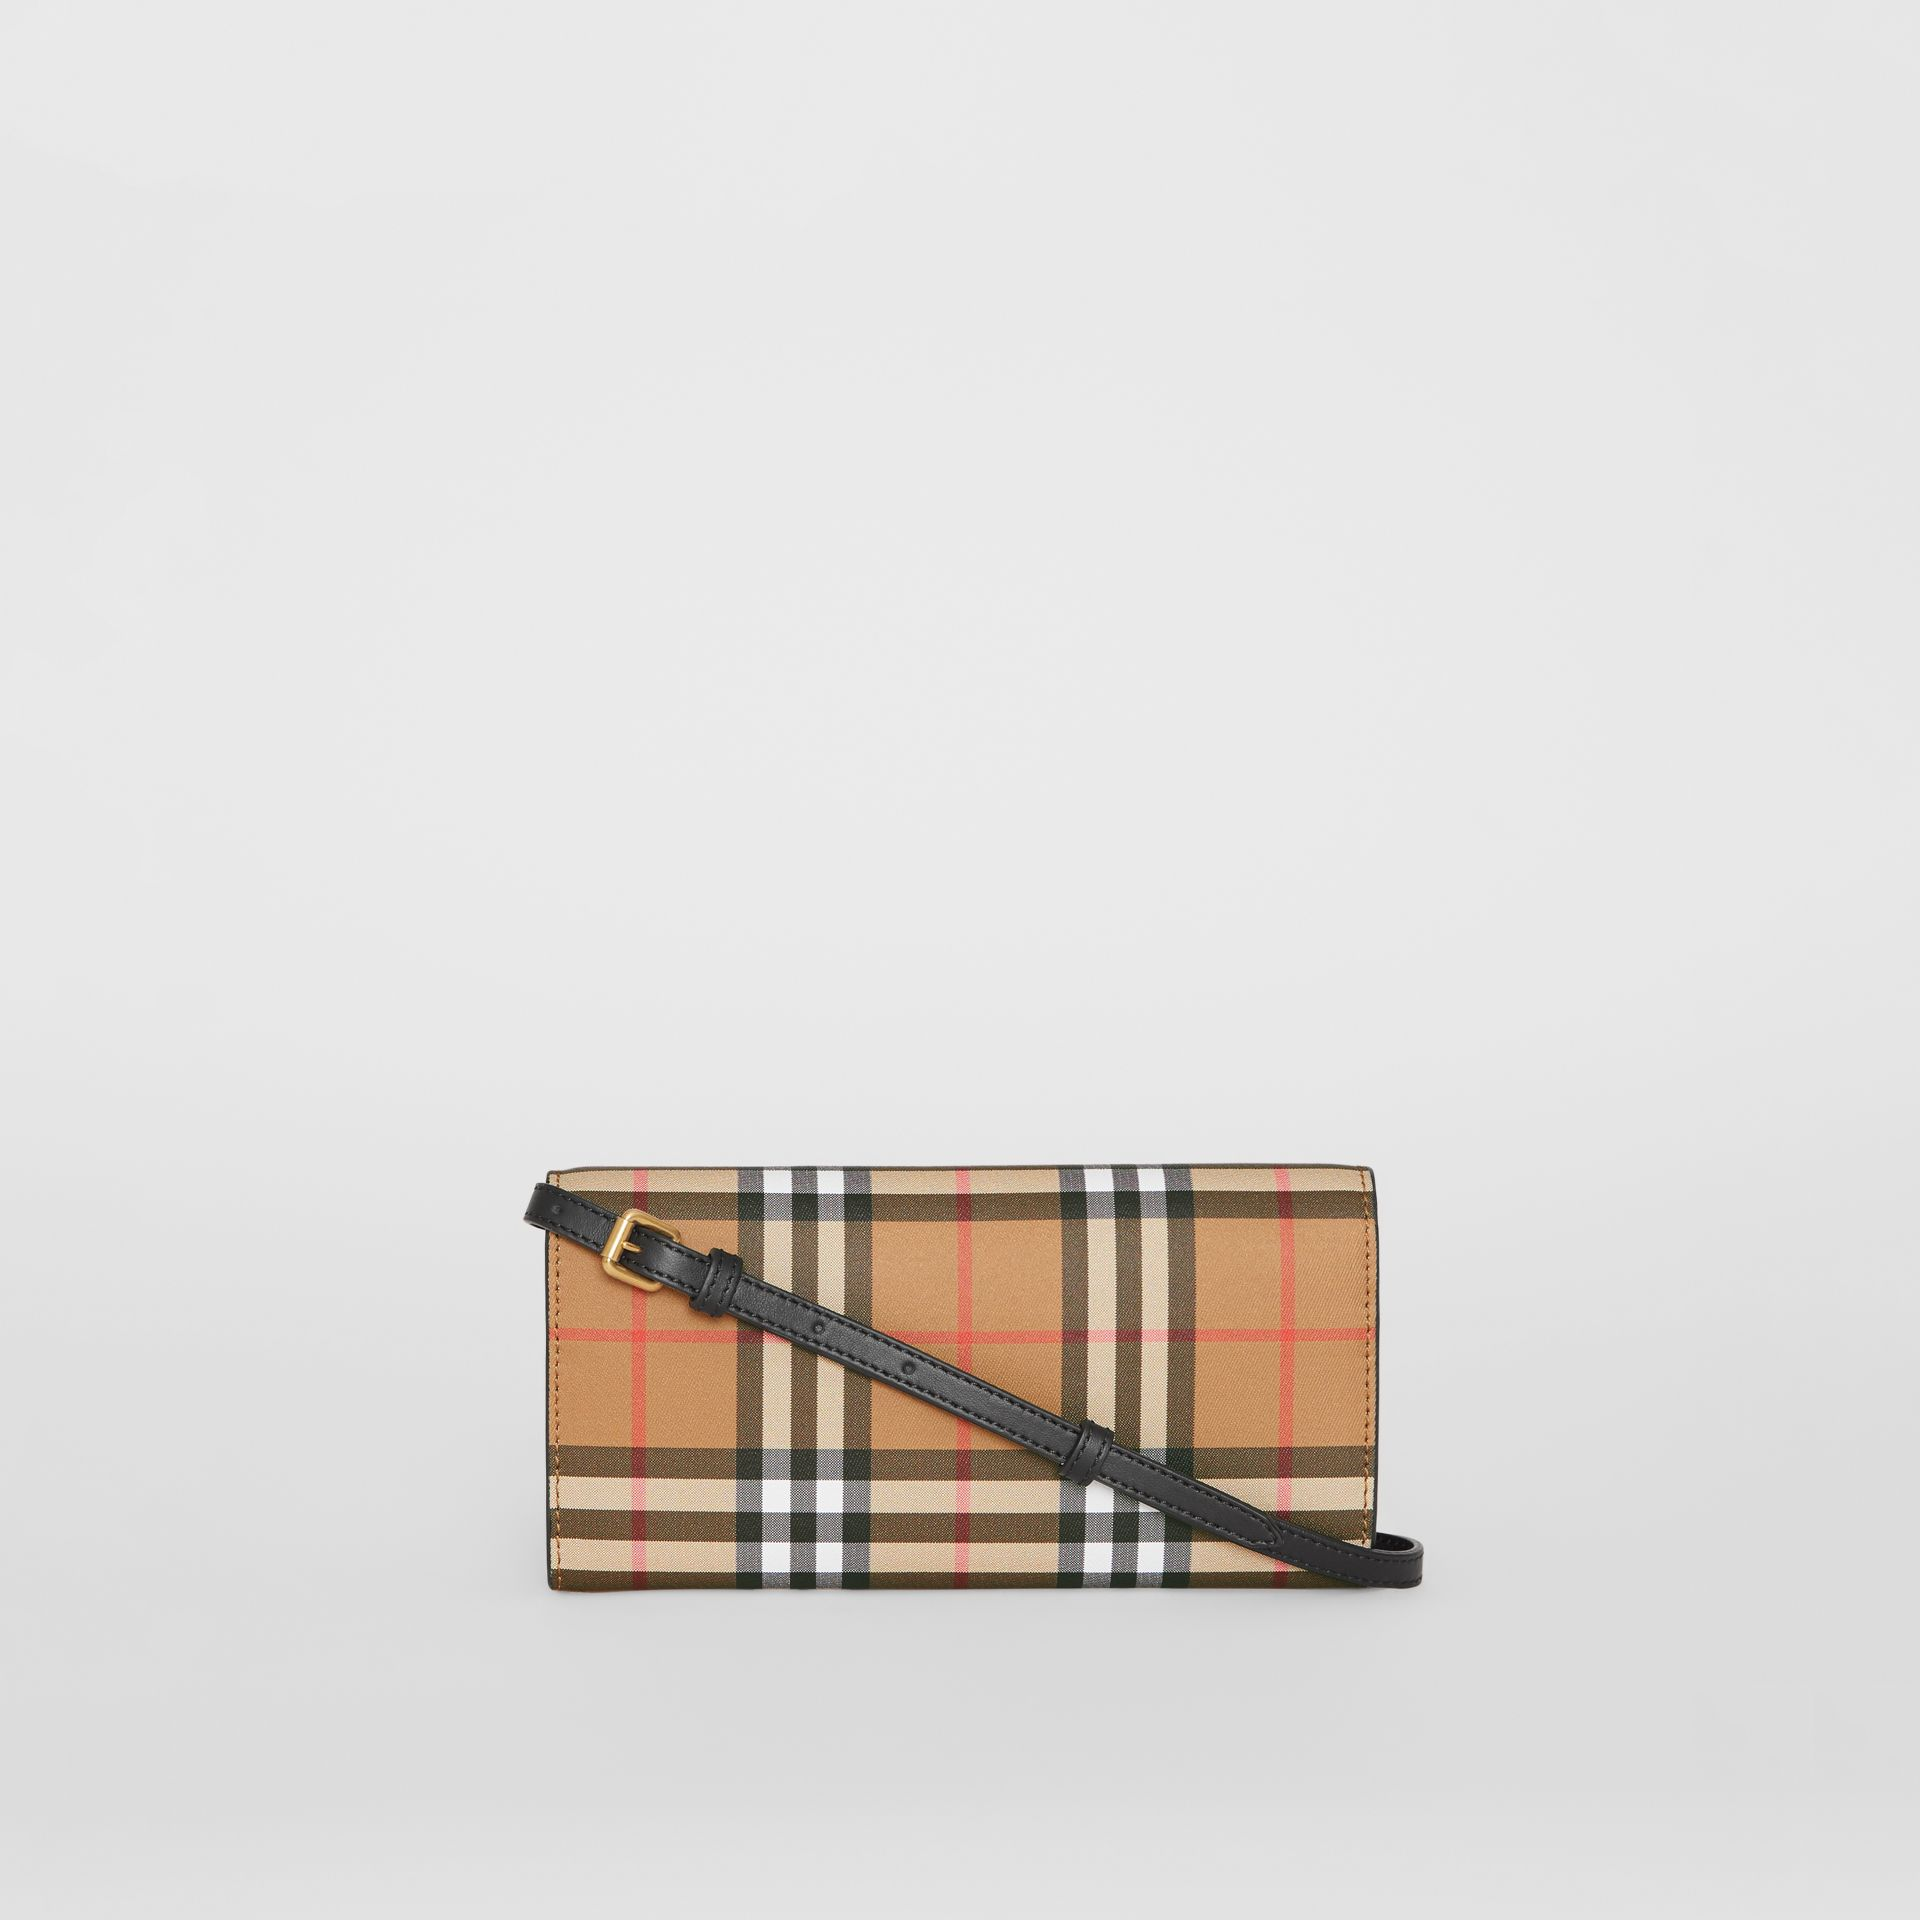 Portefeuille en cuir à motif Vintage check avec sangle amovible (Noir) - Femme | Burberry Canada - photo de la galerie 7